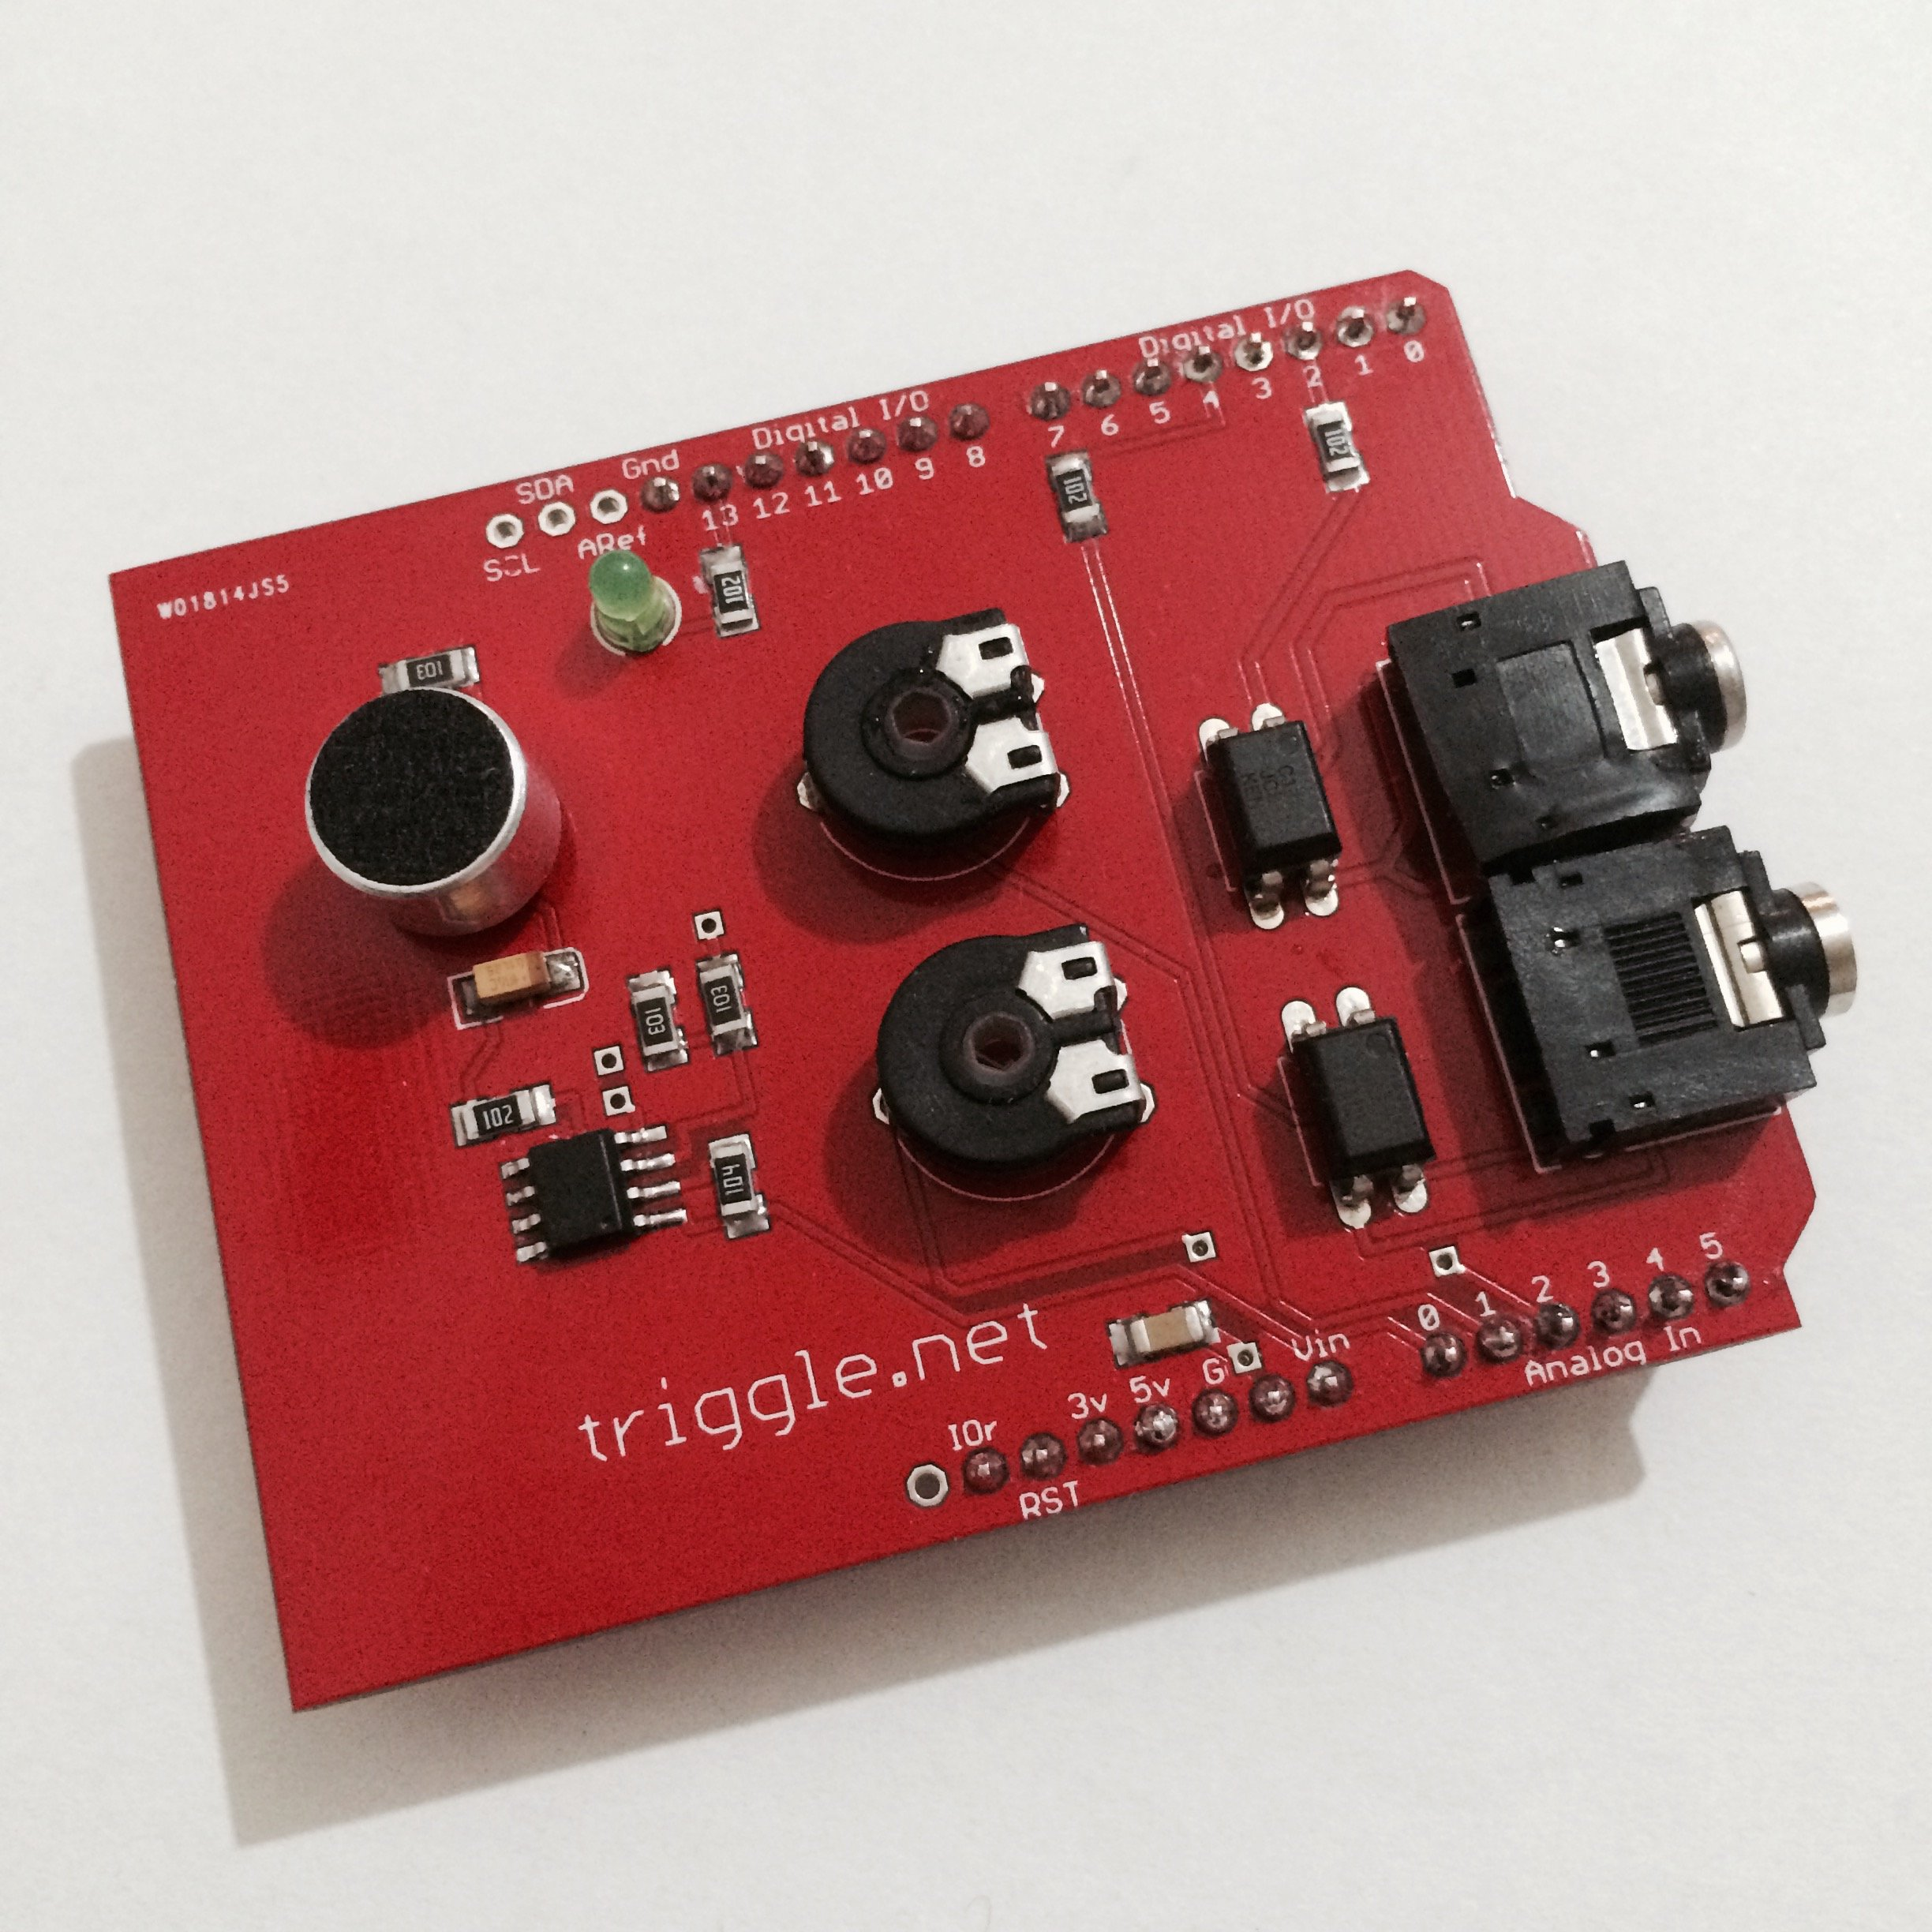 Sound trigger shield for arduino from xgknx on tindie